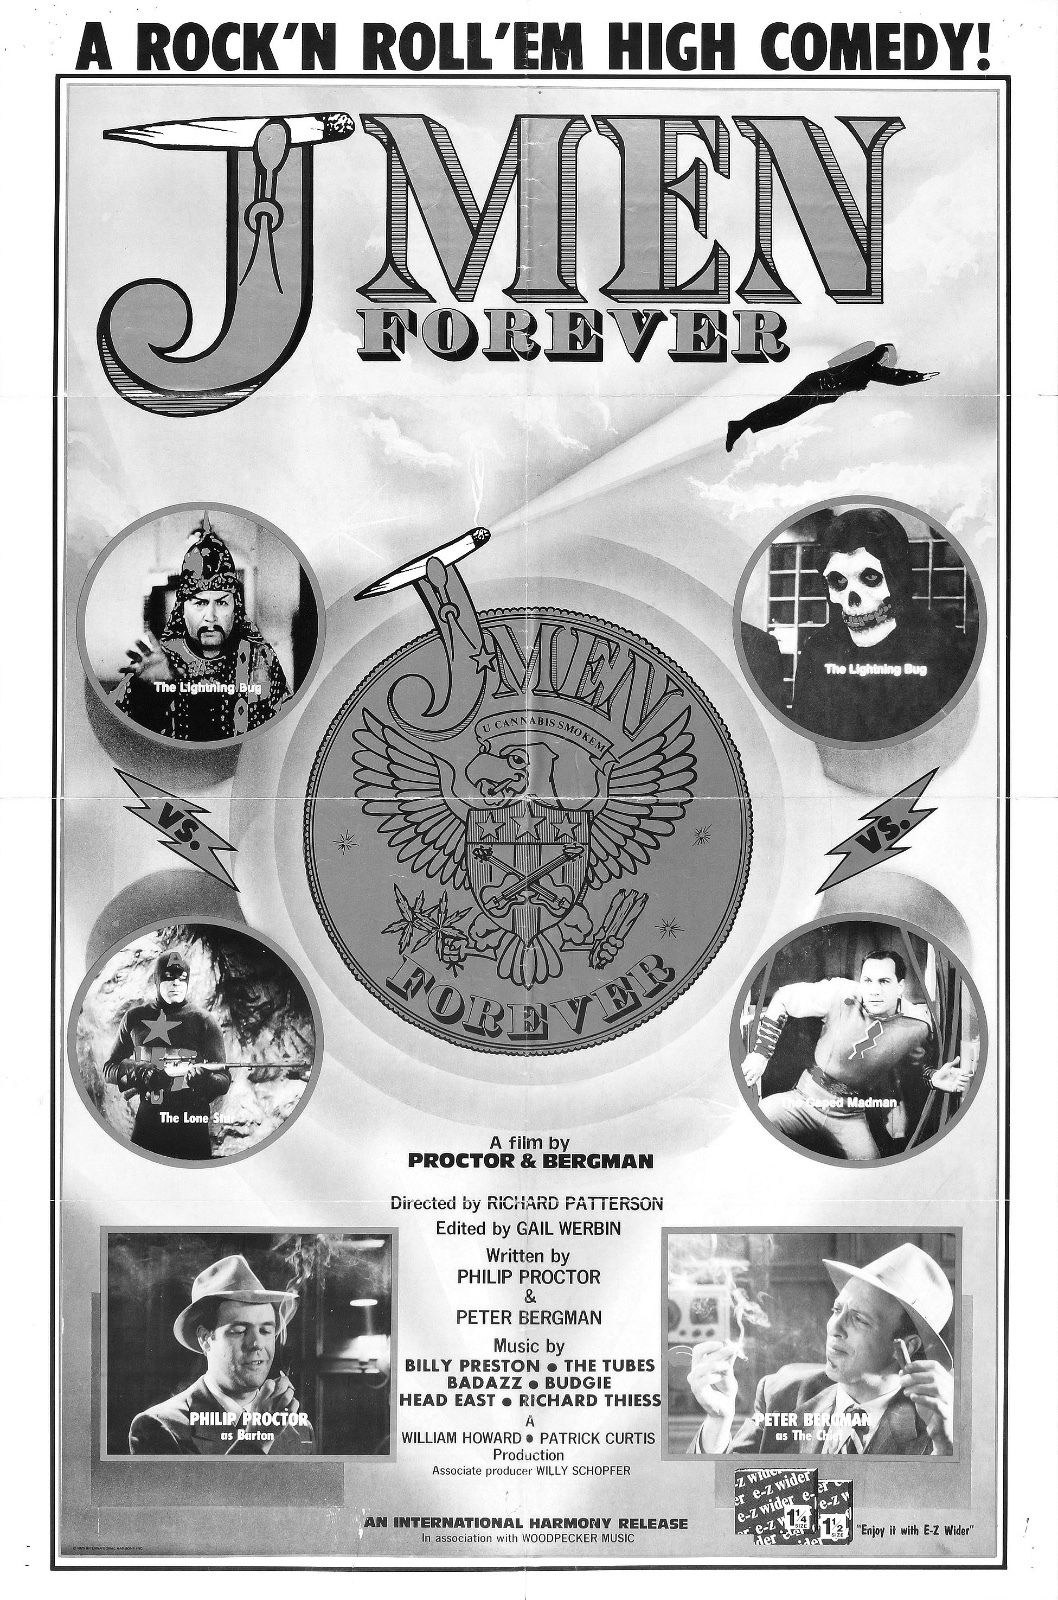 74015-J-Men-Forever-Movie-1979-Comedy-Wall-Print-Poster-Affiche